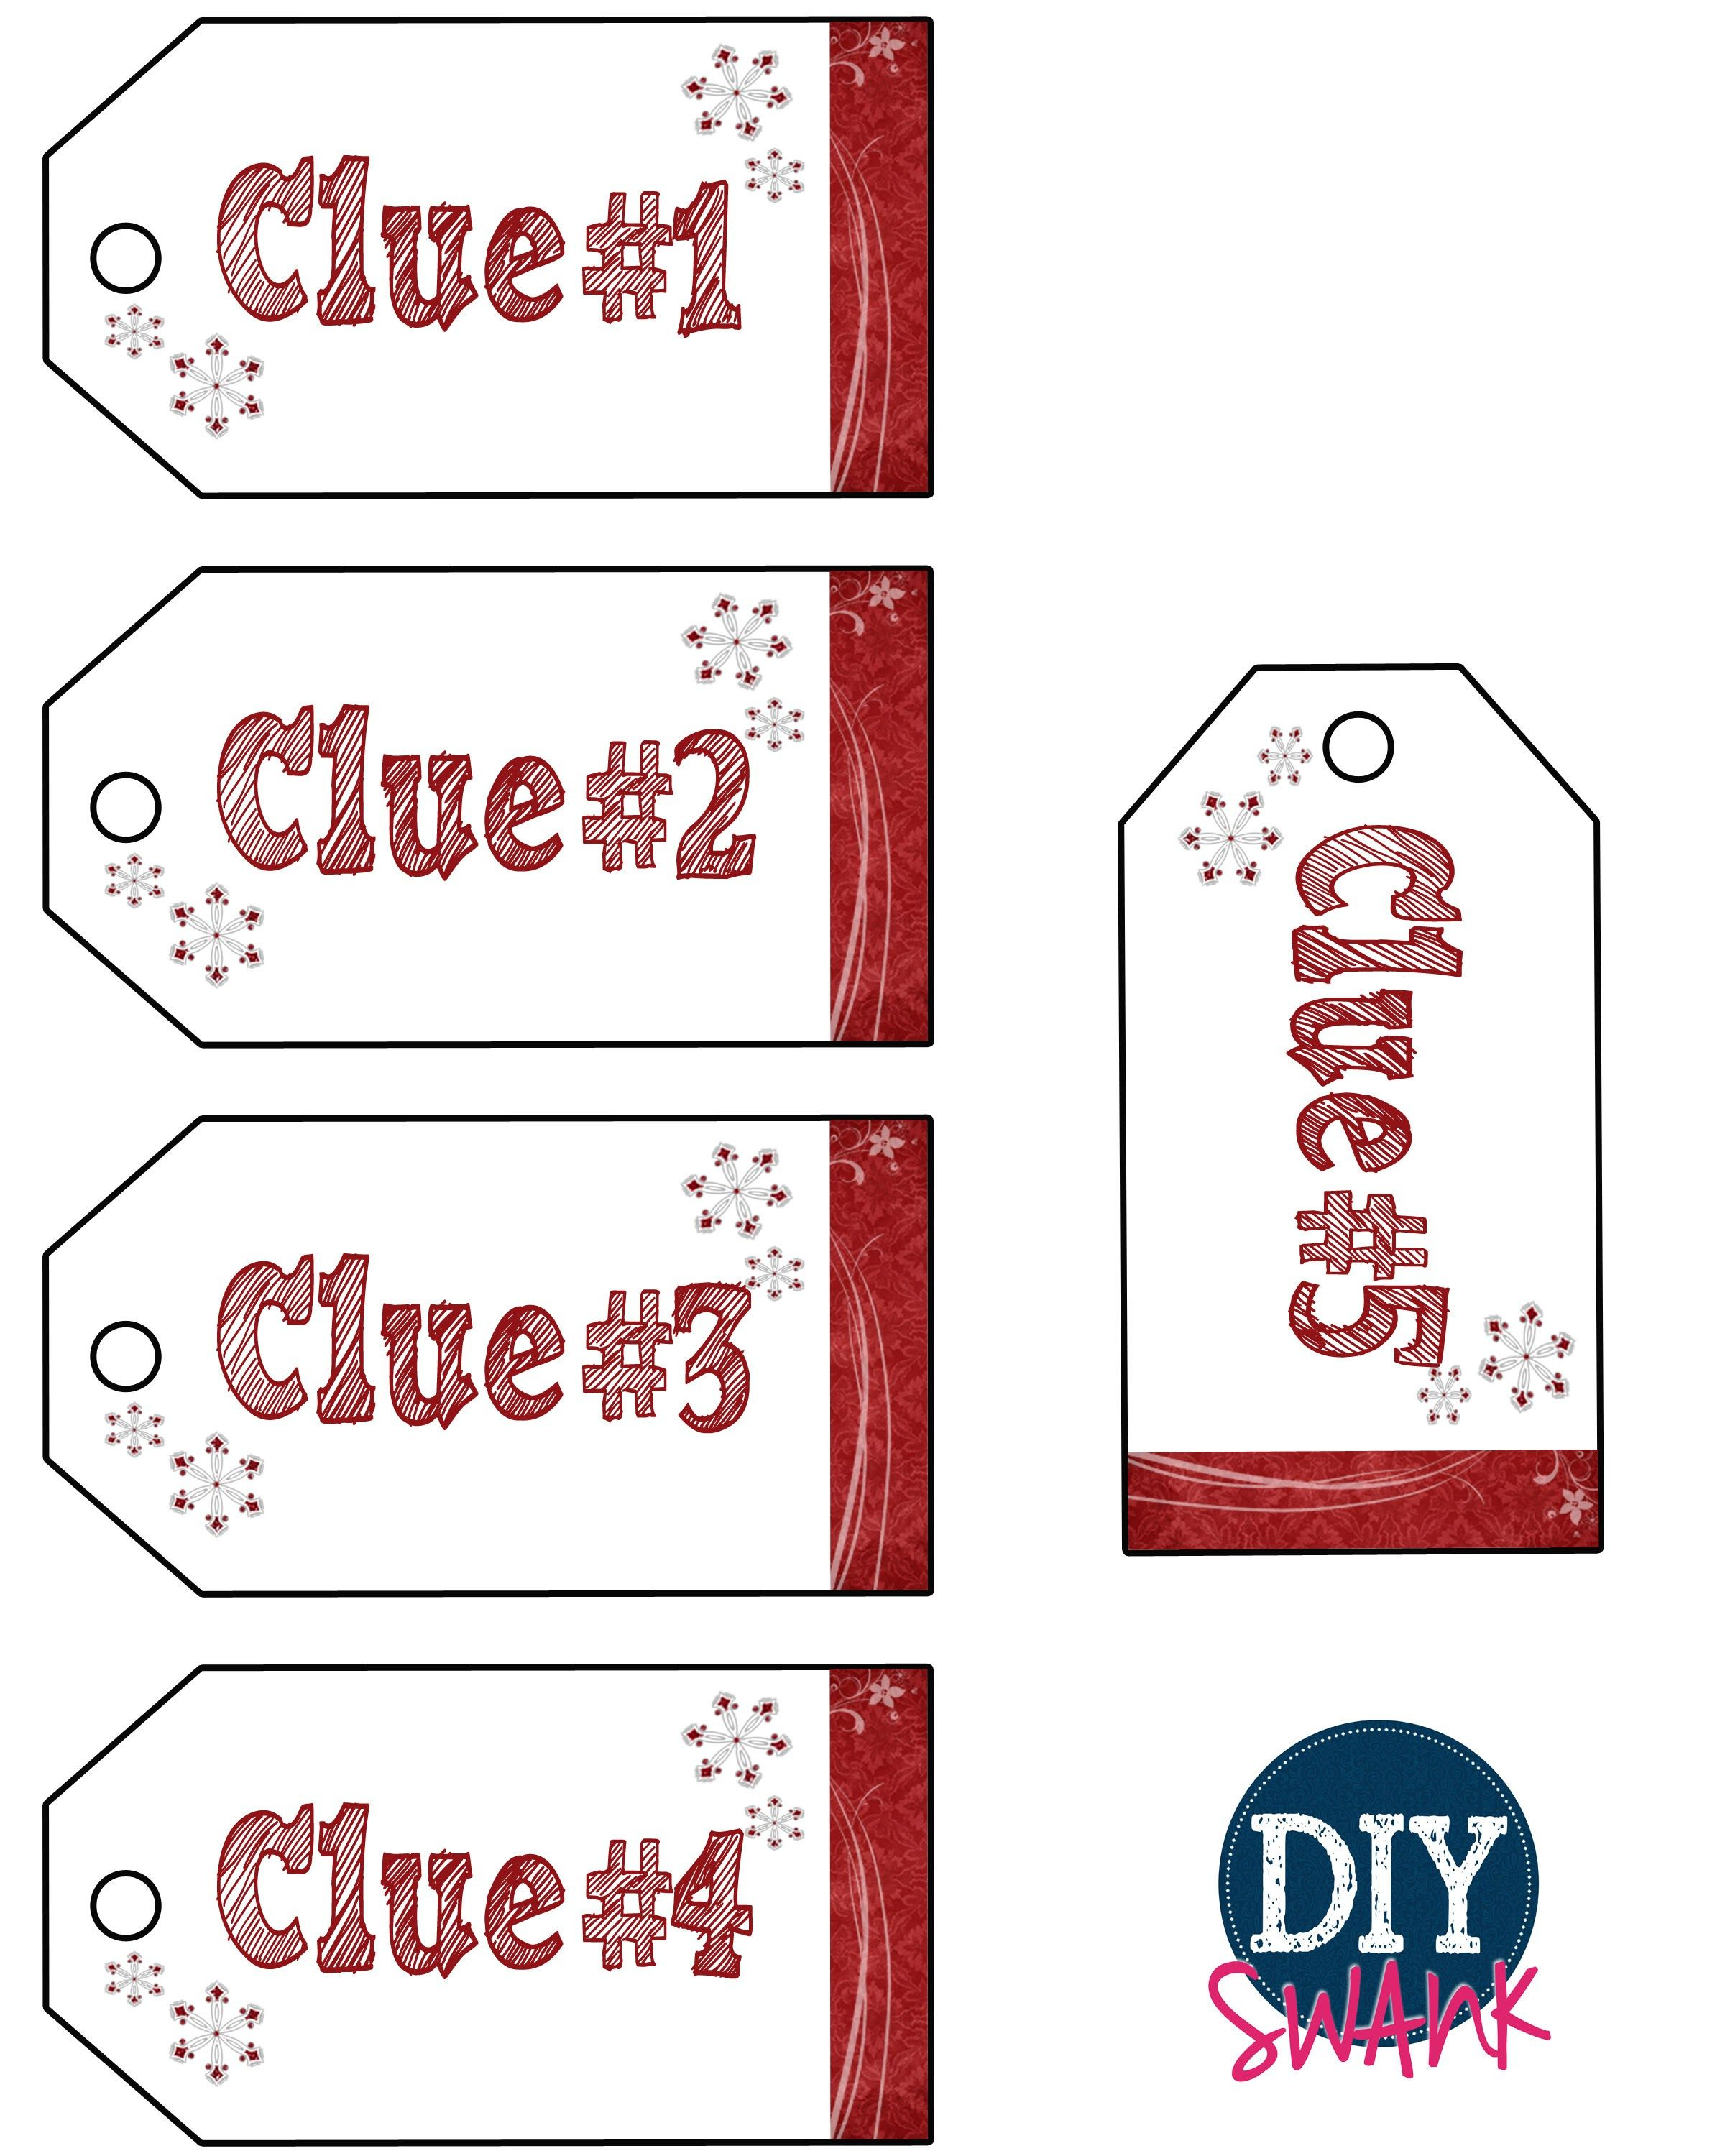 This is an image of Invaluable Christmas Scavenger Hunt Printable Clues